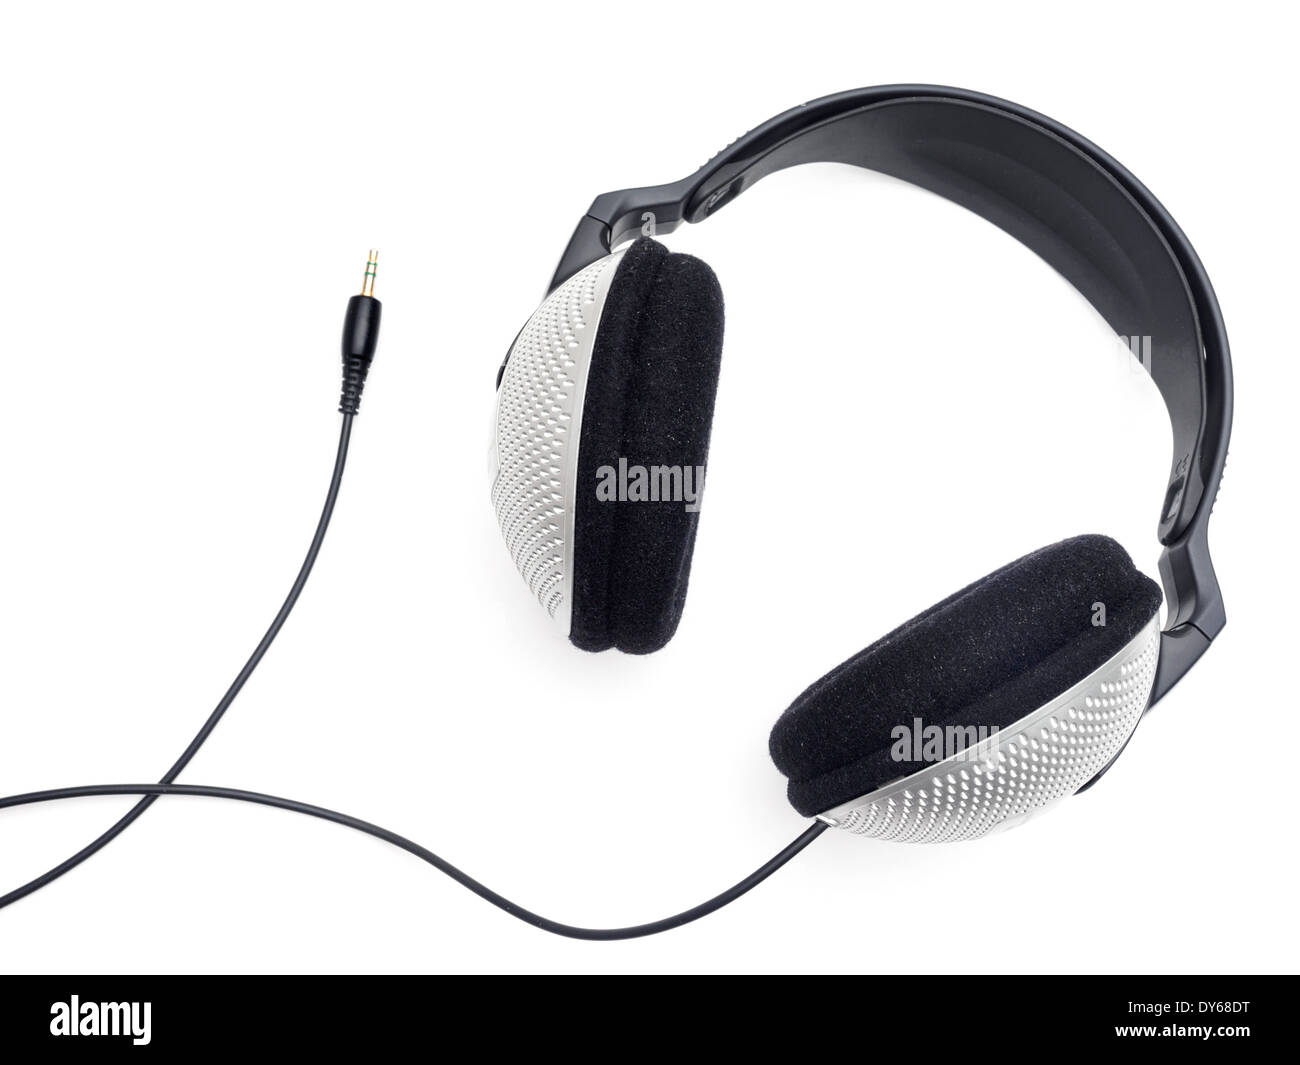 Headphones cut out isolated on white background - Stock Image